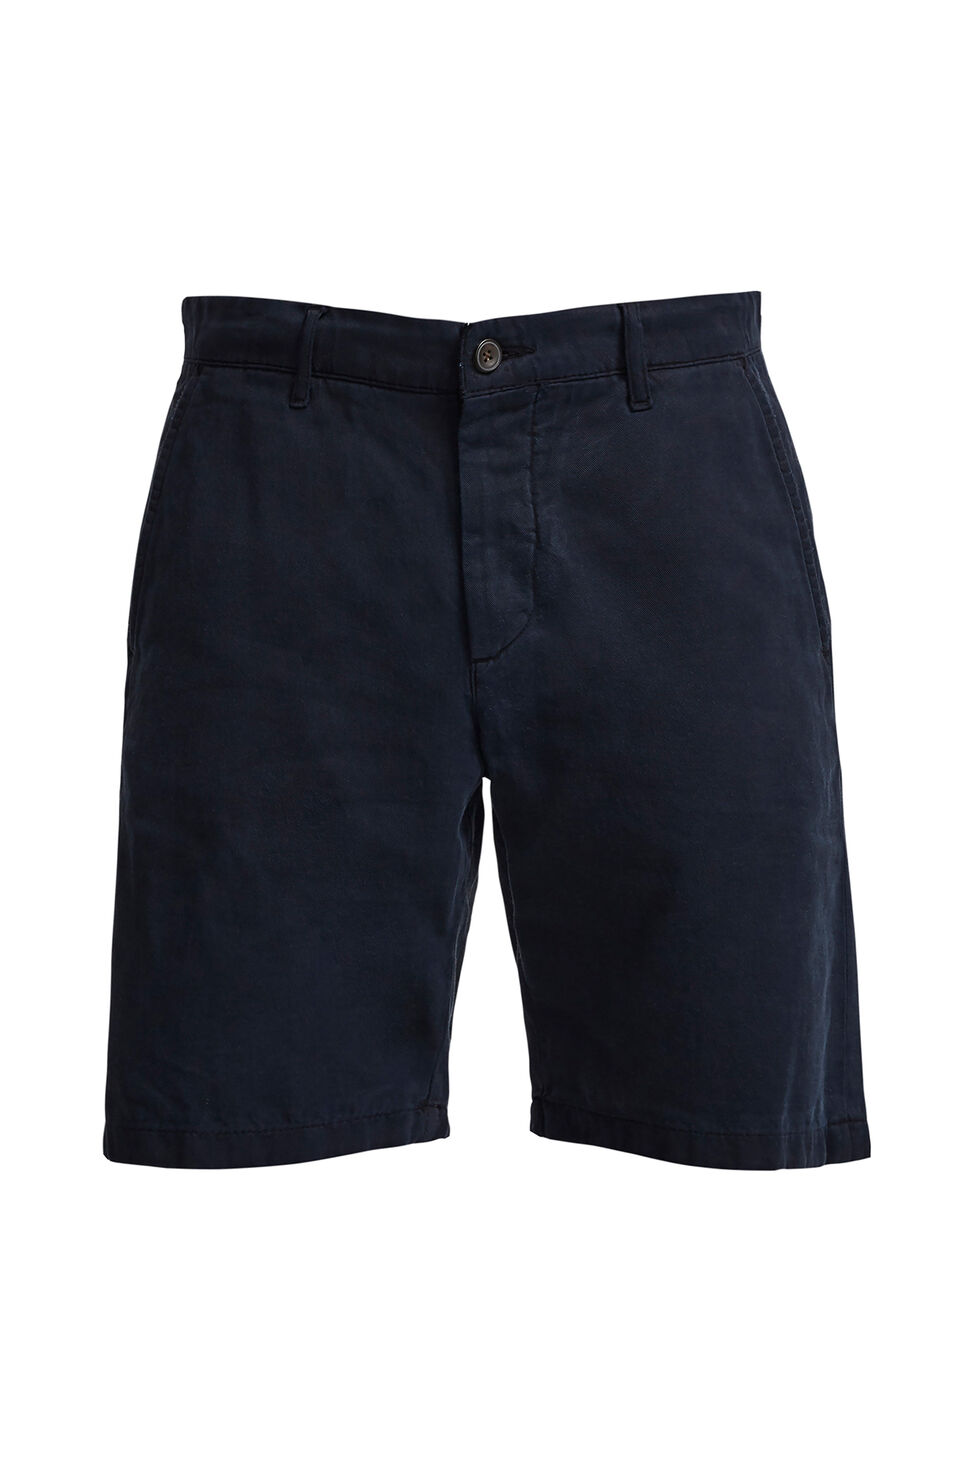 Crown Shorts 1363 1931363132, NAVY BLUE